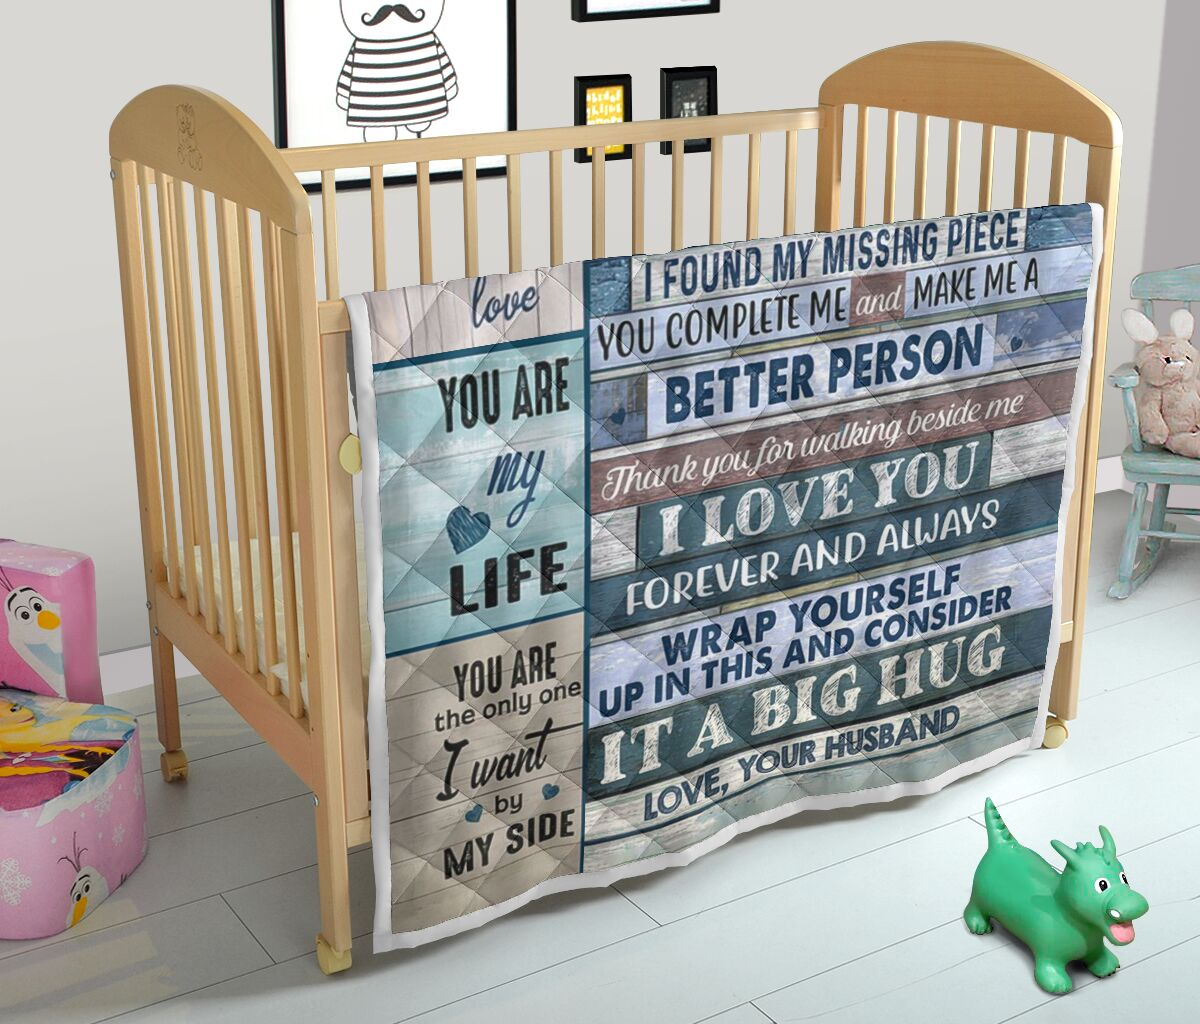 To my wife love your husband quilt queen